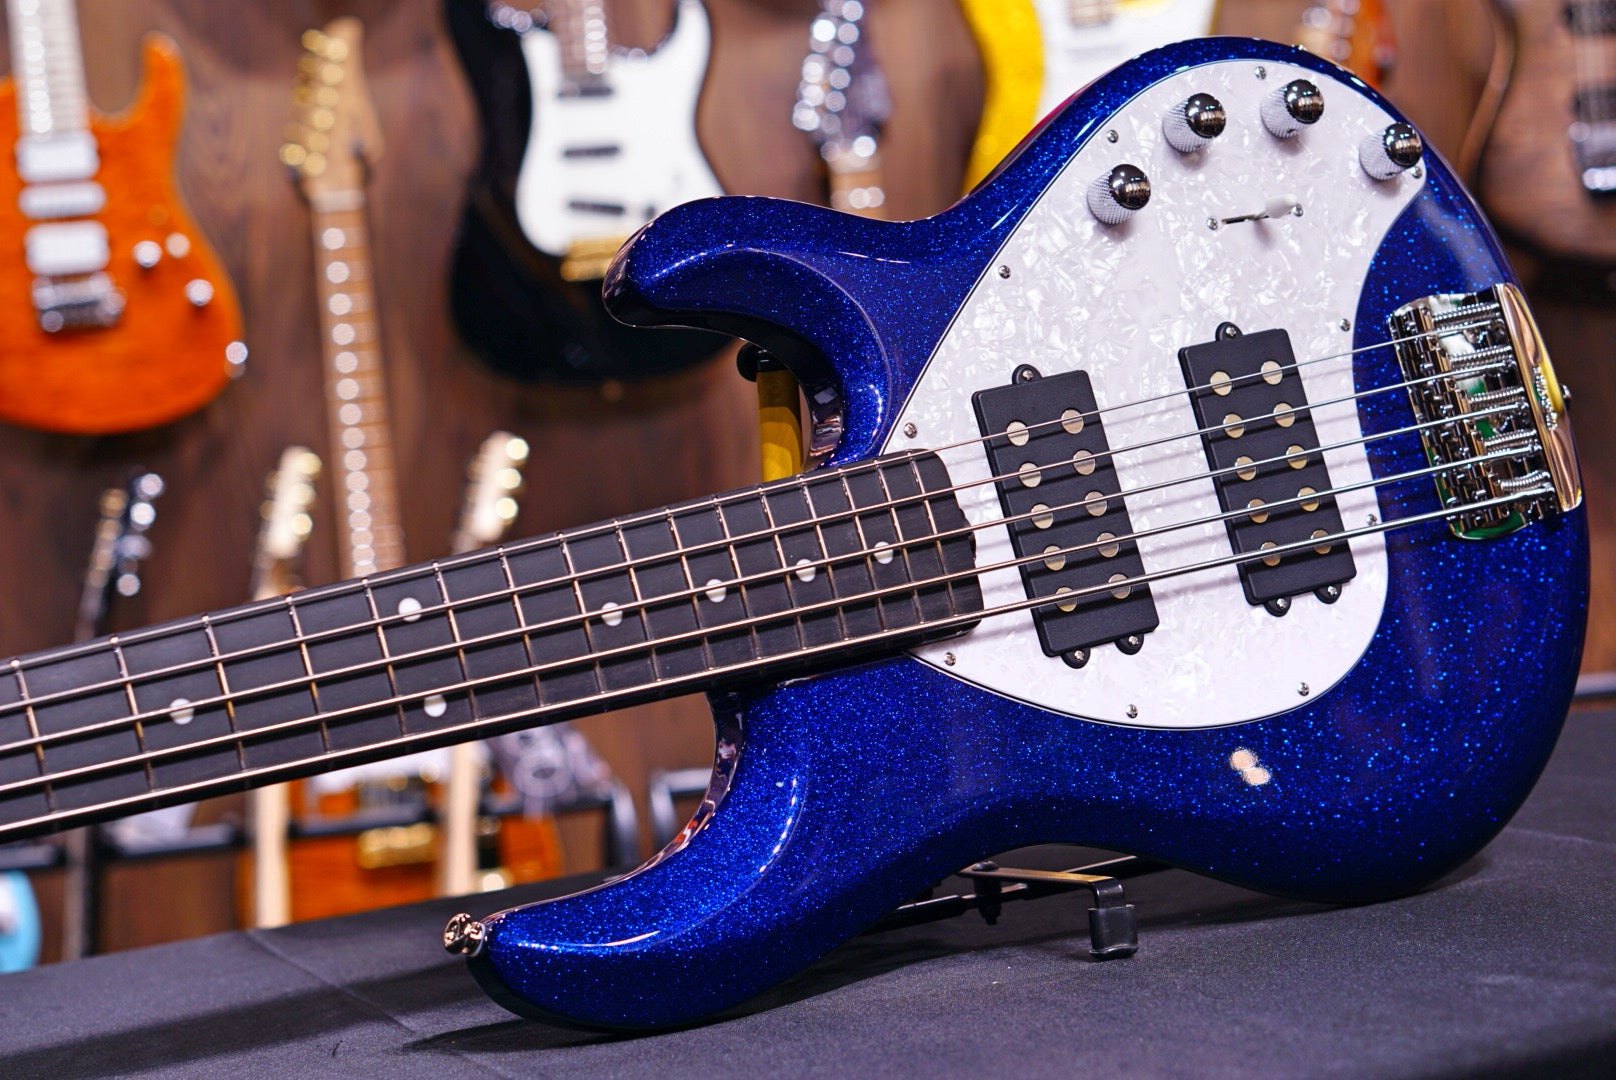 Ernie Ball Music Man StingRay Special 5 HH Bass Guitar - Tectonic Blue Sparkle F90560 - HIENDGUITAR   Musicman bass